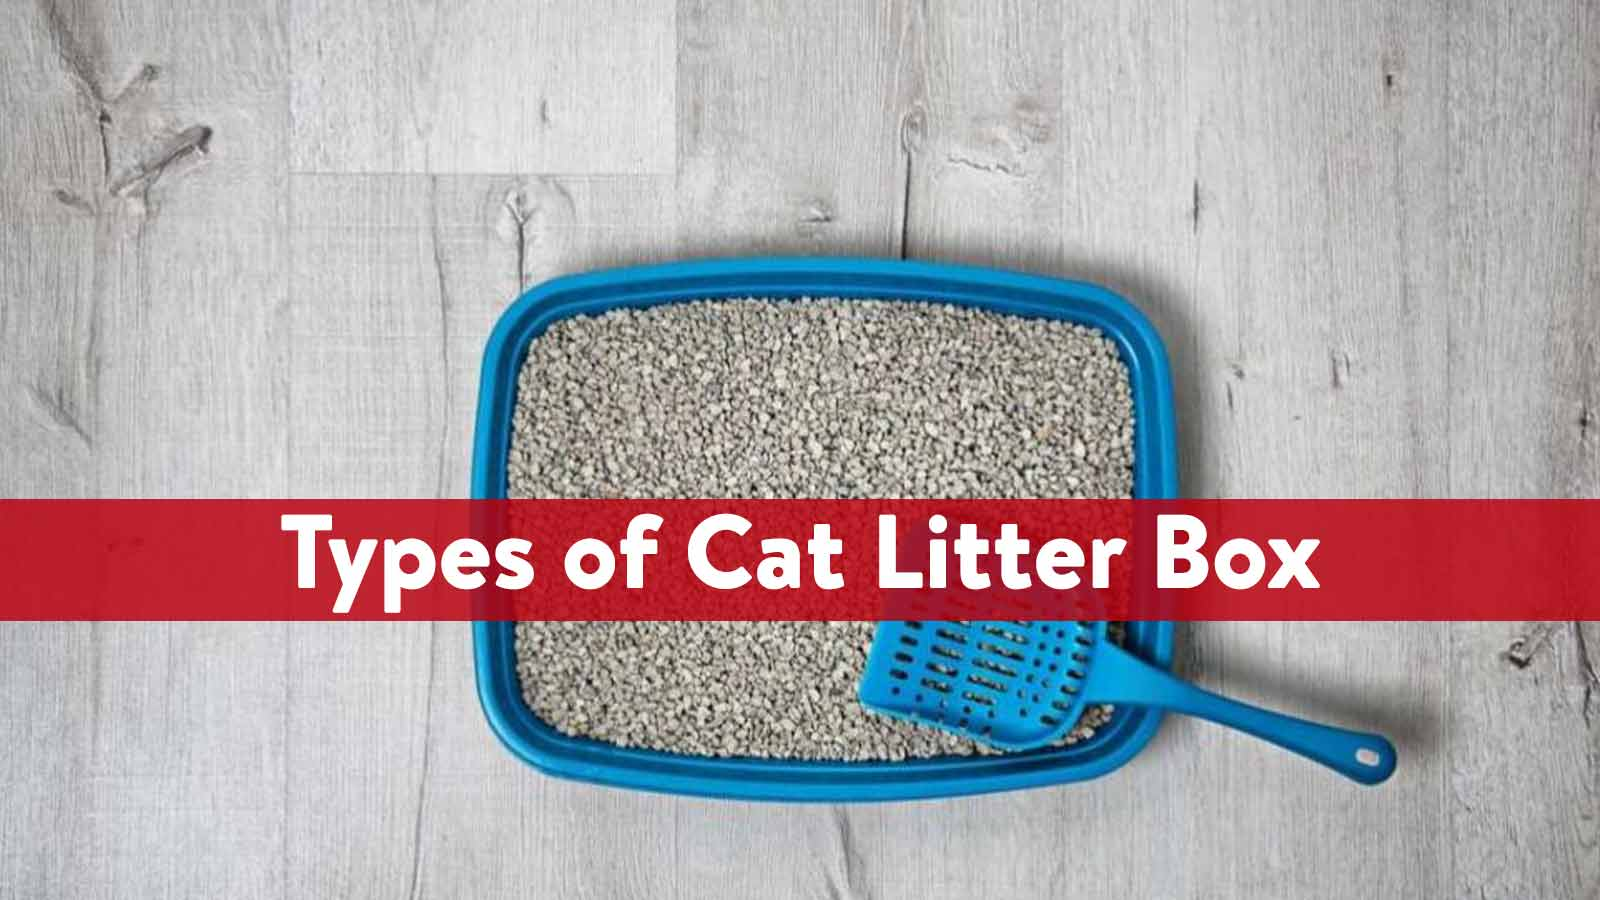 Types of Cat Litter Box